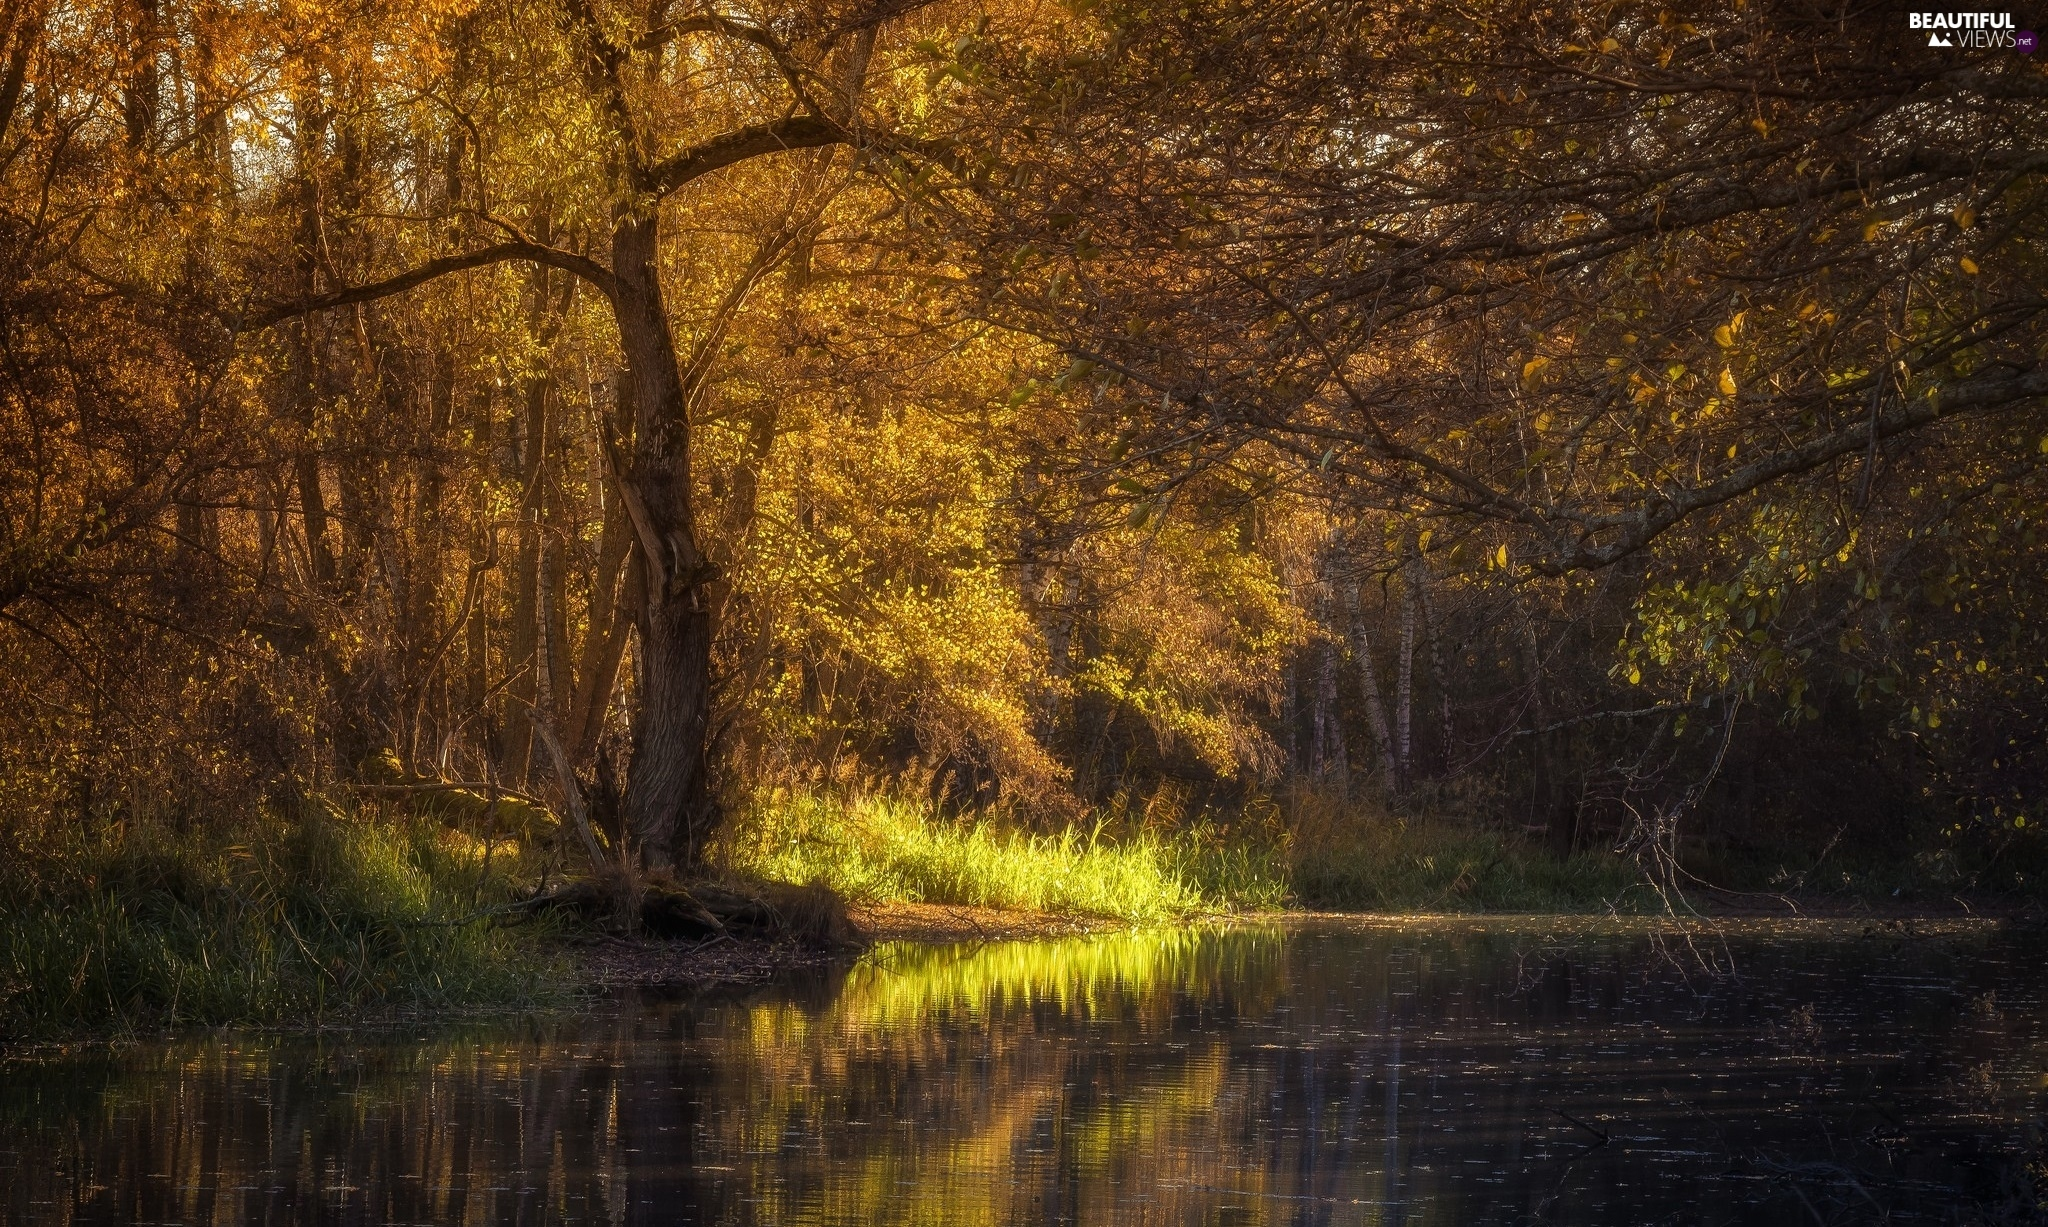 forest, viewes, autumn, River, trees